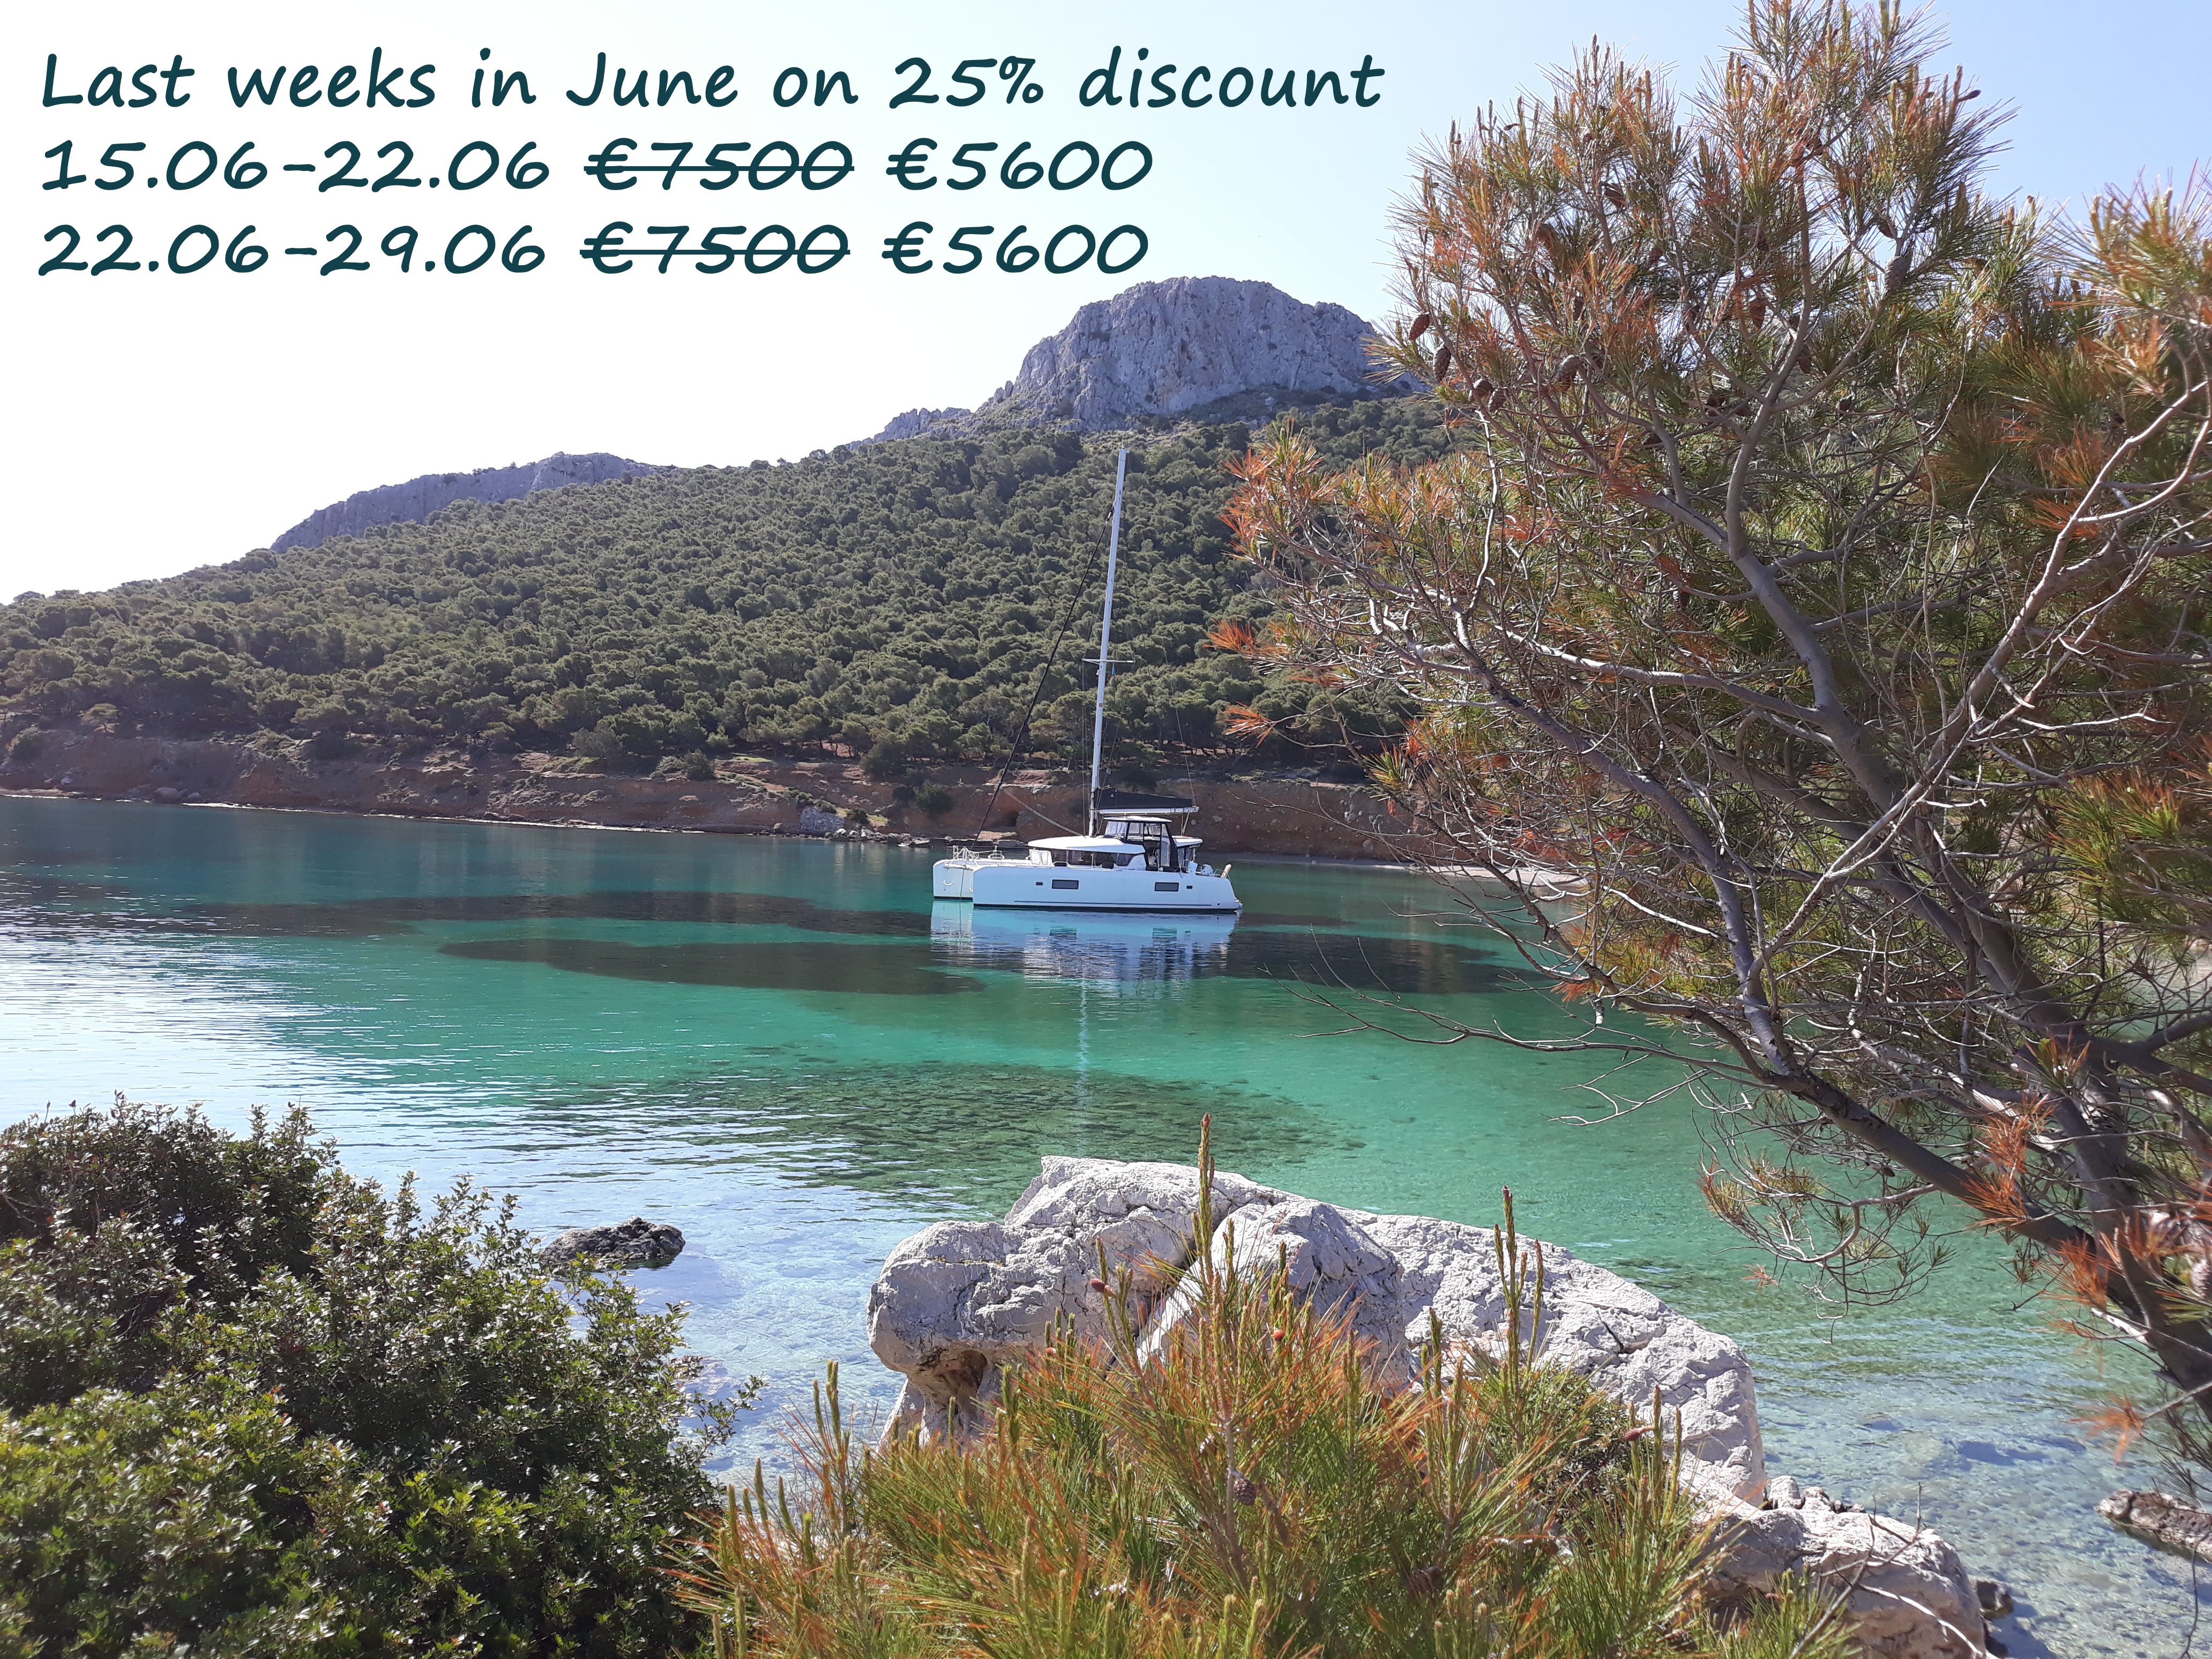 25% discount on last available weeks in June